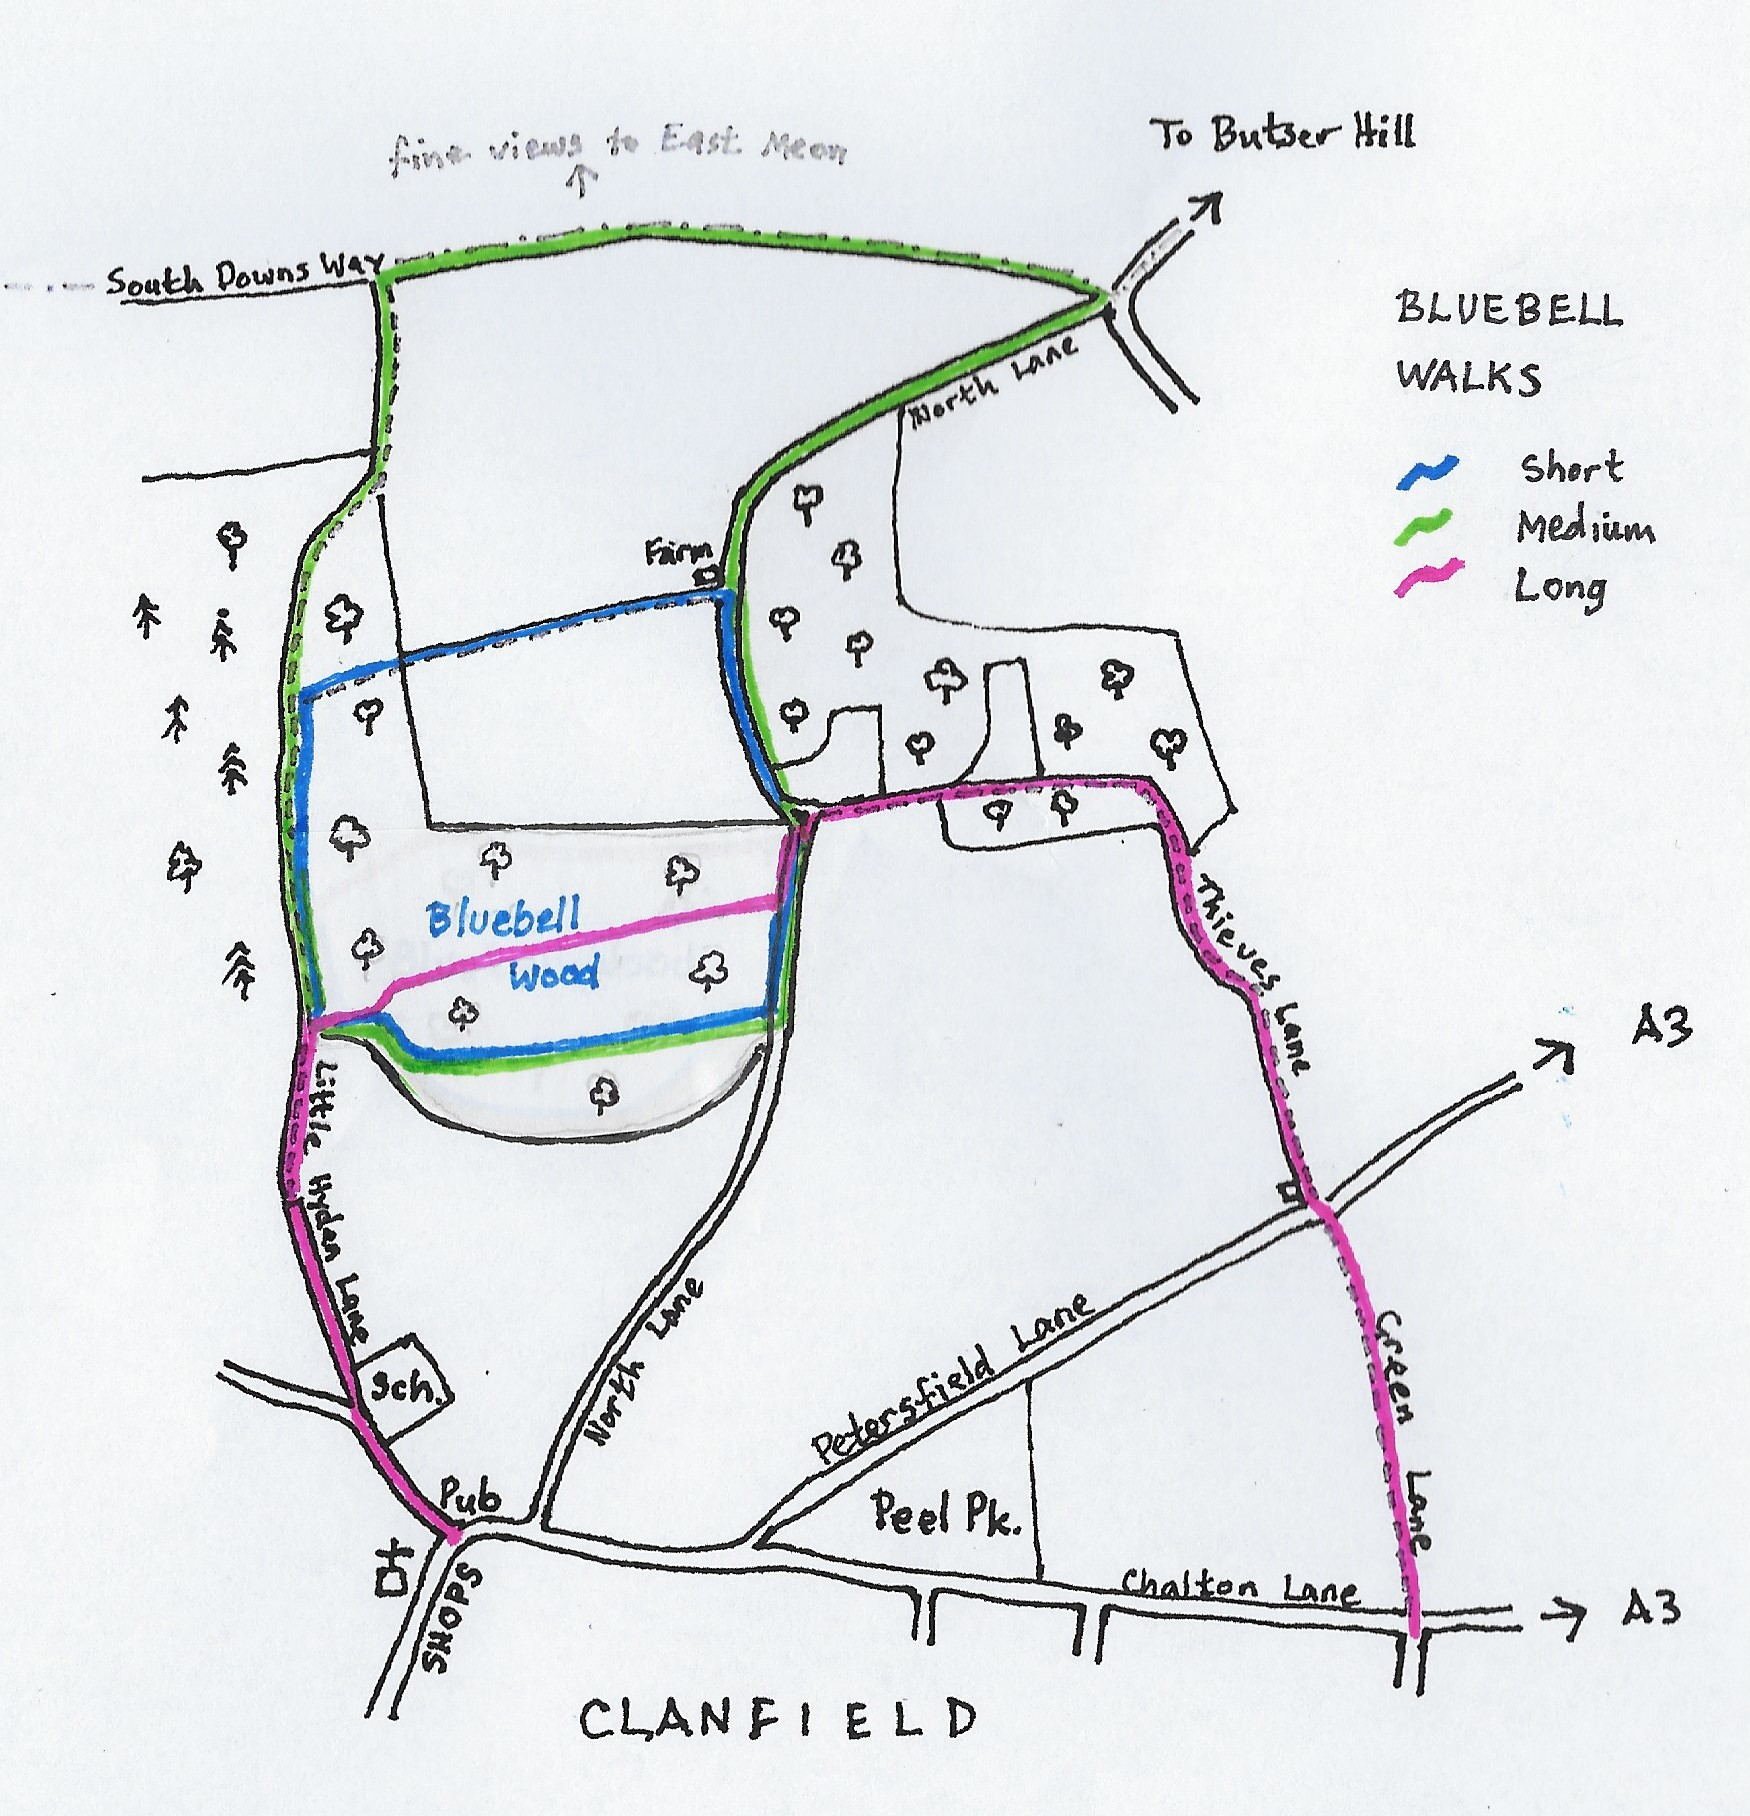 Walk of the Week - BLUEBELL WALKS